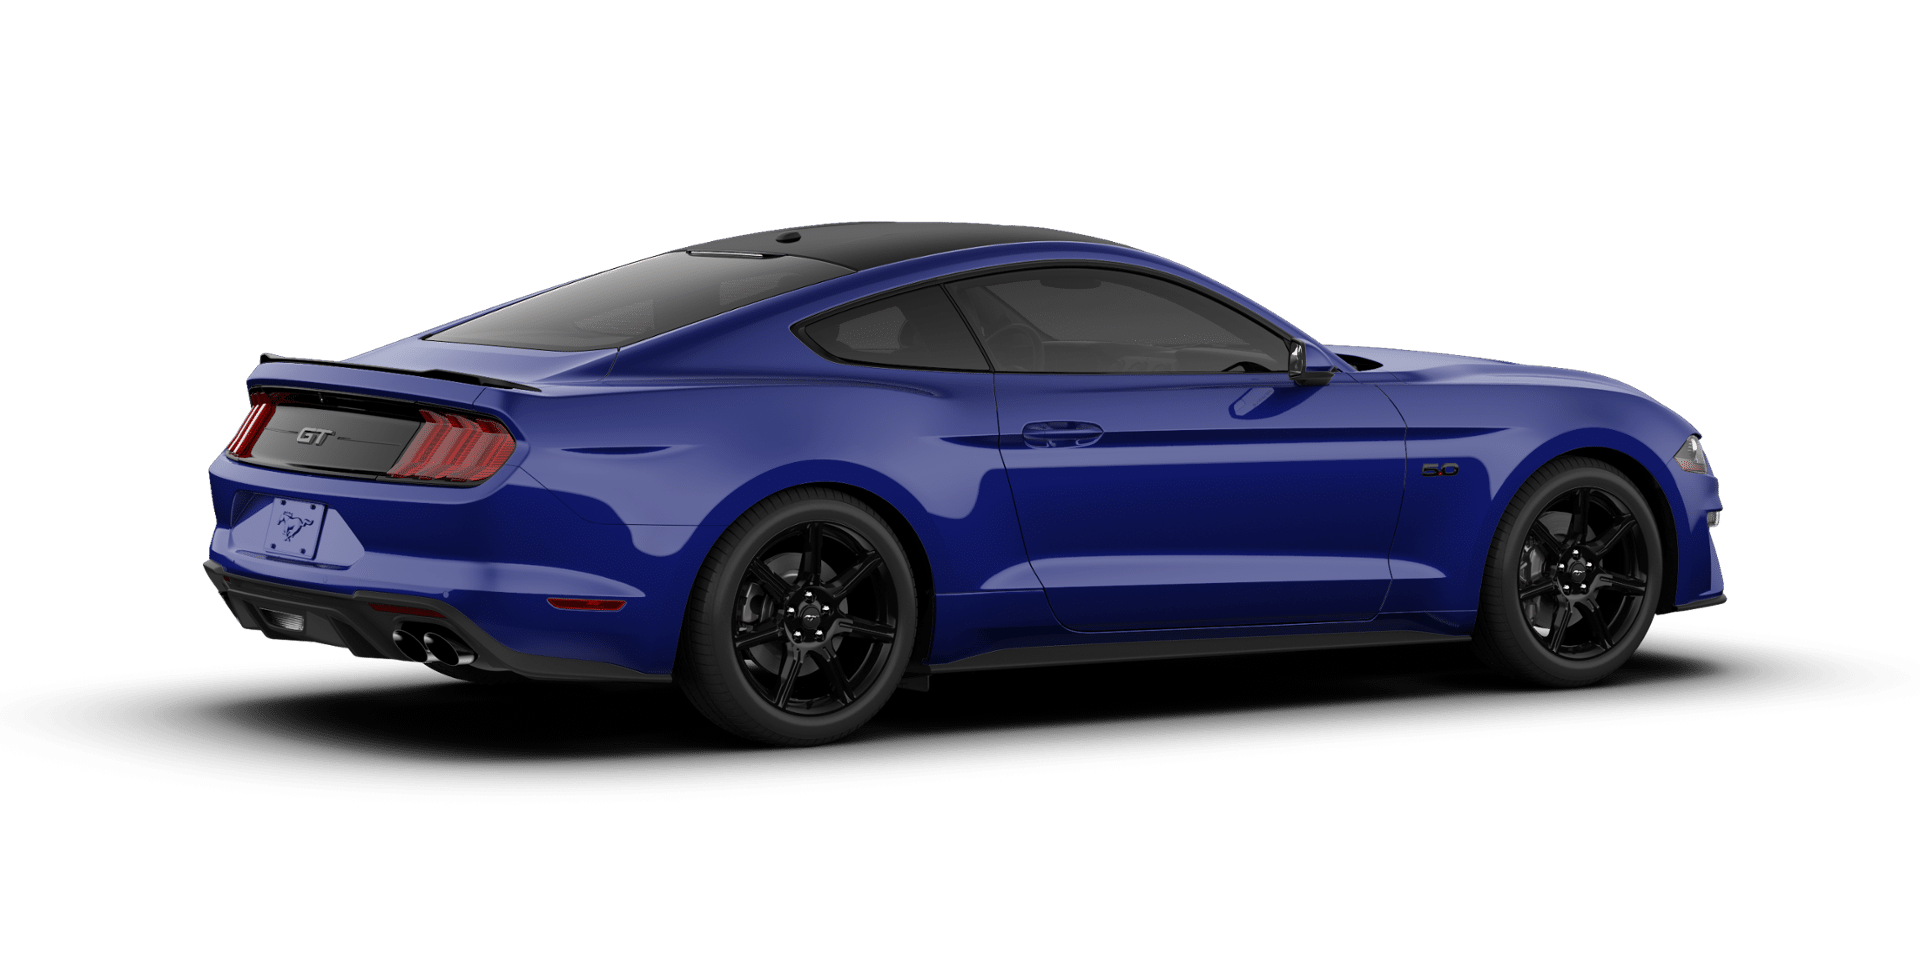 2018 Ford Mustang Kona Blue Black Accent Package Mustang Hybrid Car Ford Mustang